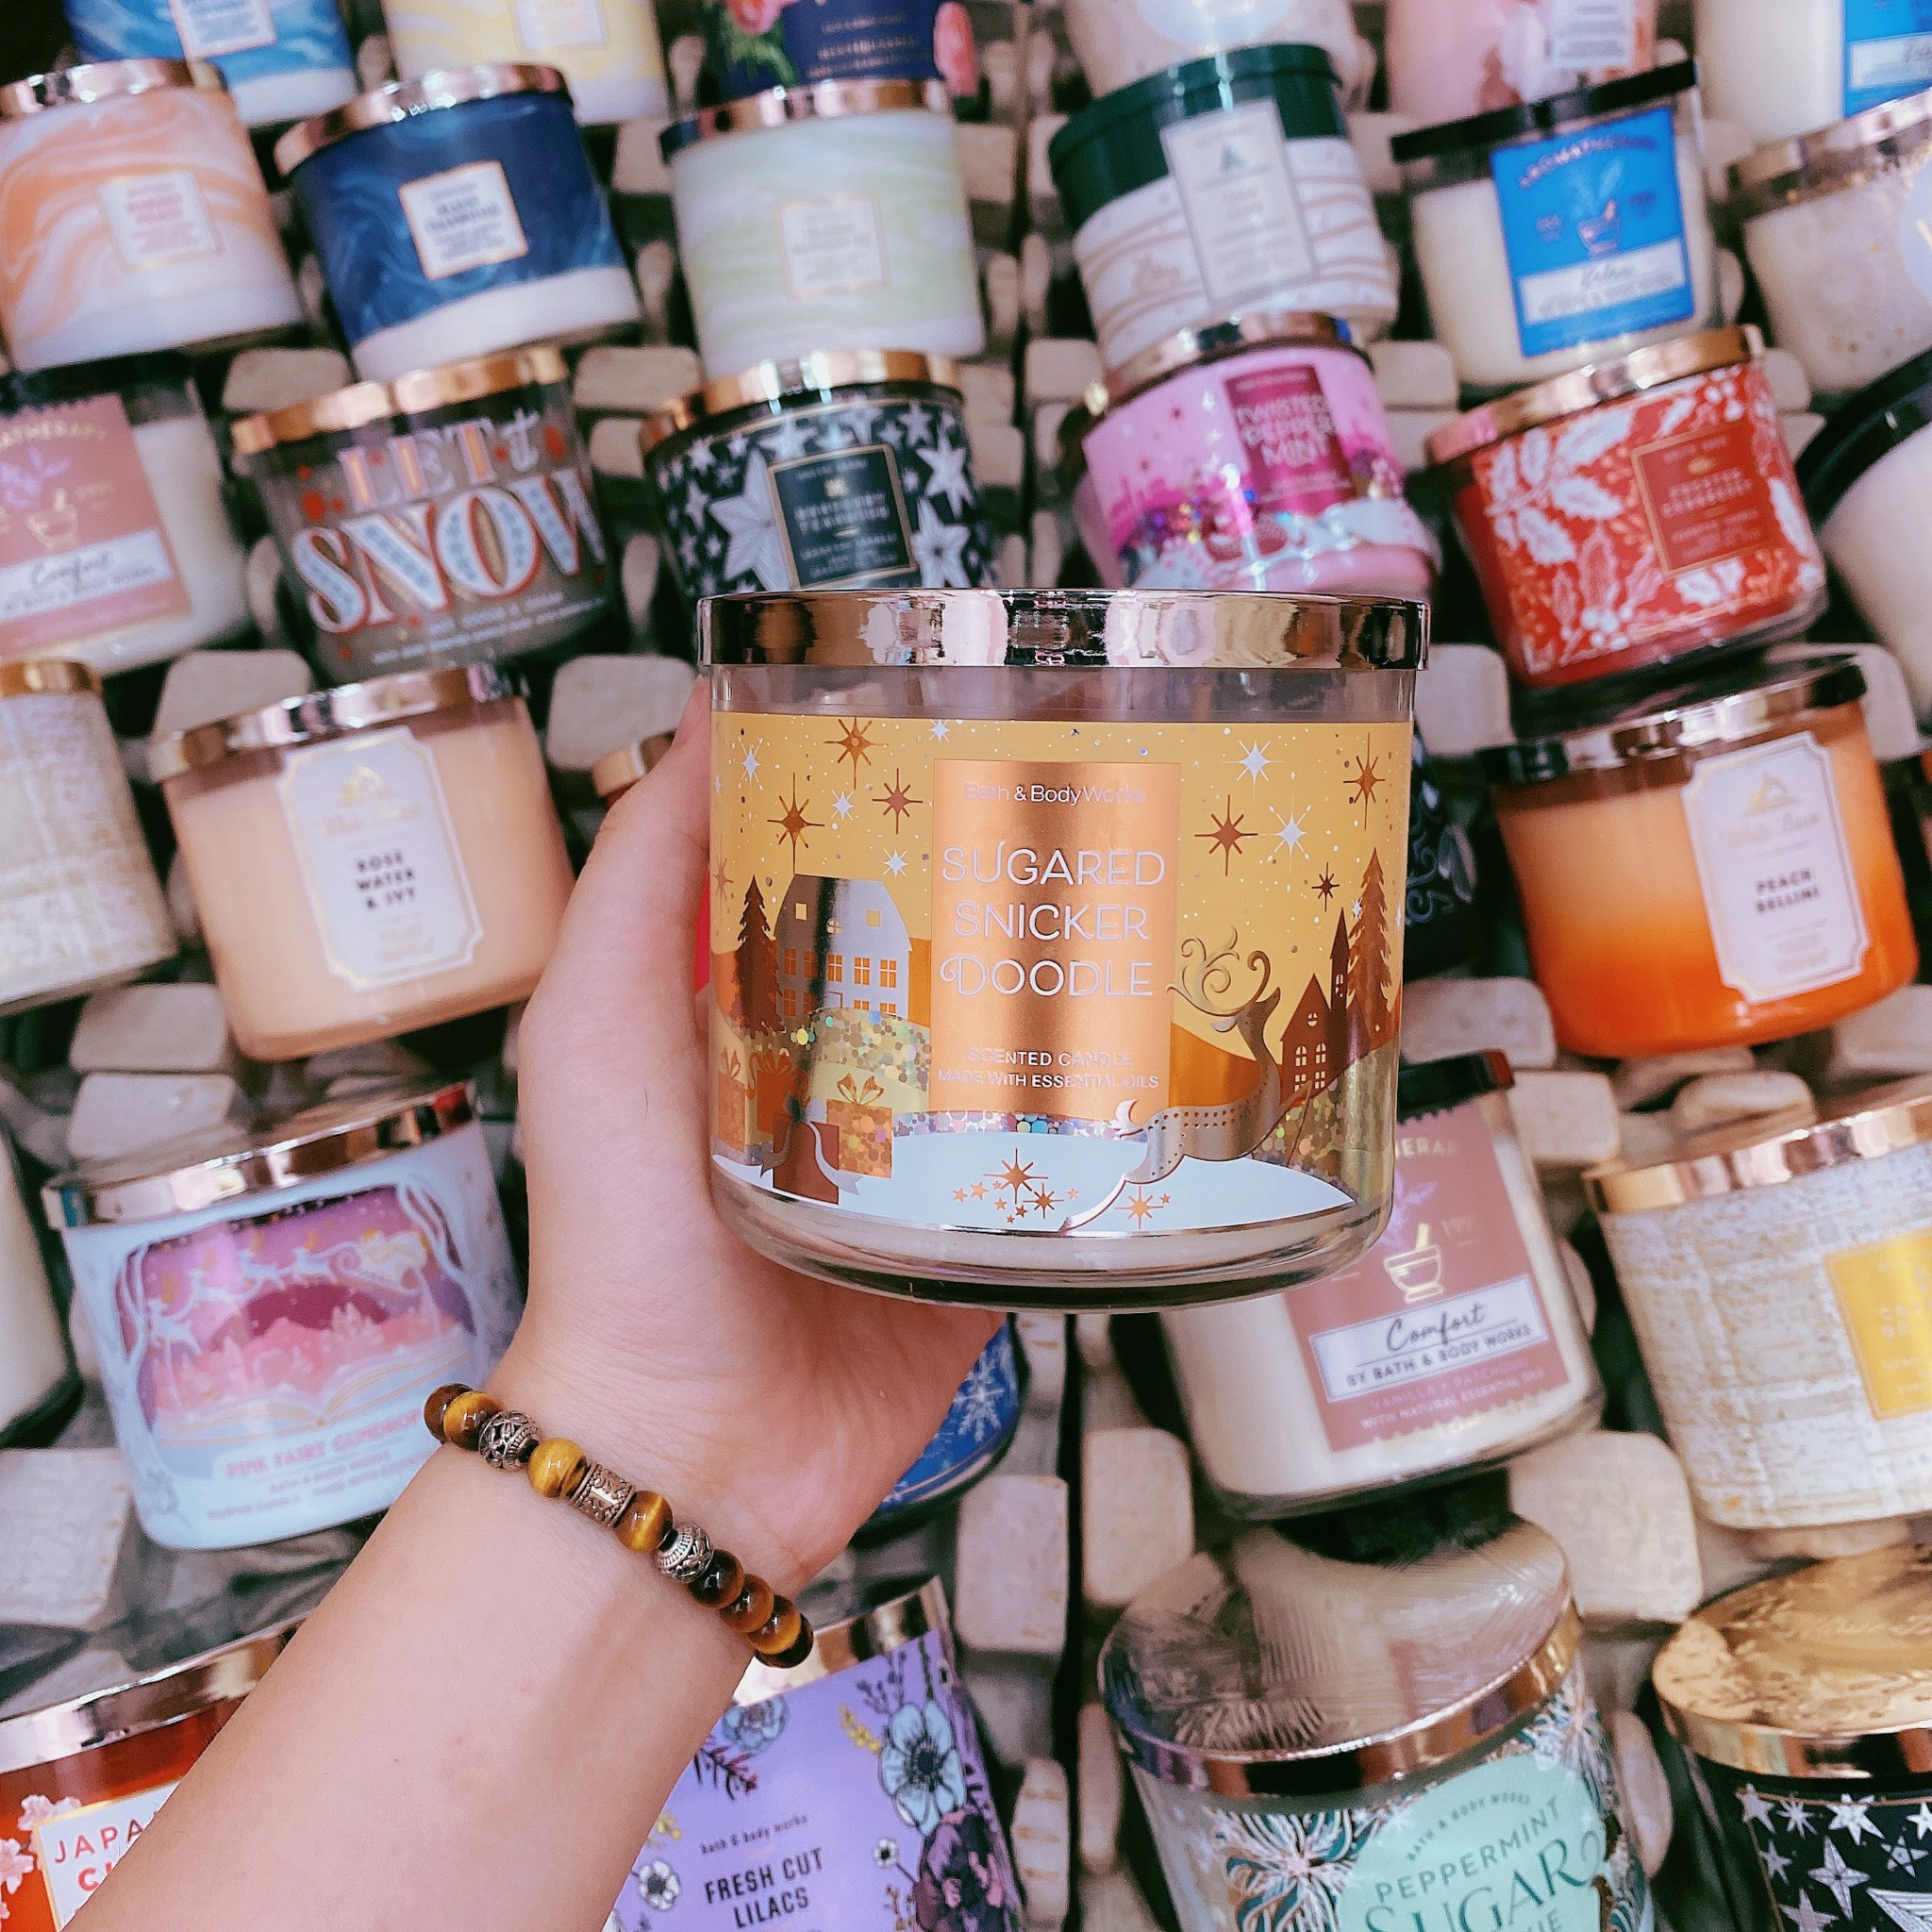 Nến Thơm 3 Bấc Bath & Body Works Sugared Snickerdoodle Scented Candle